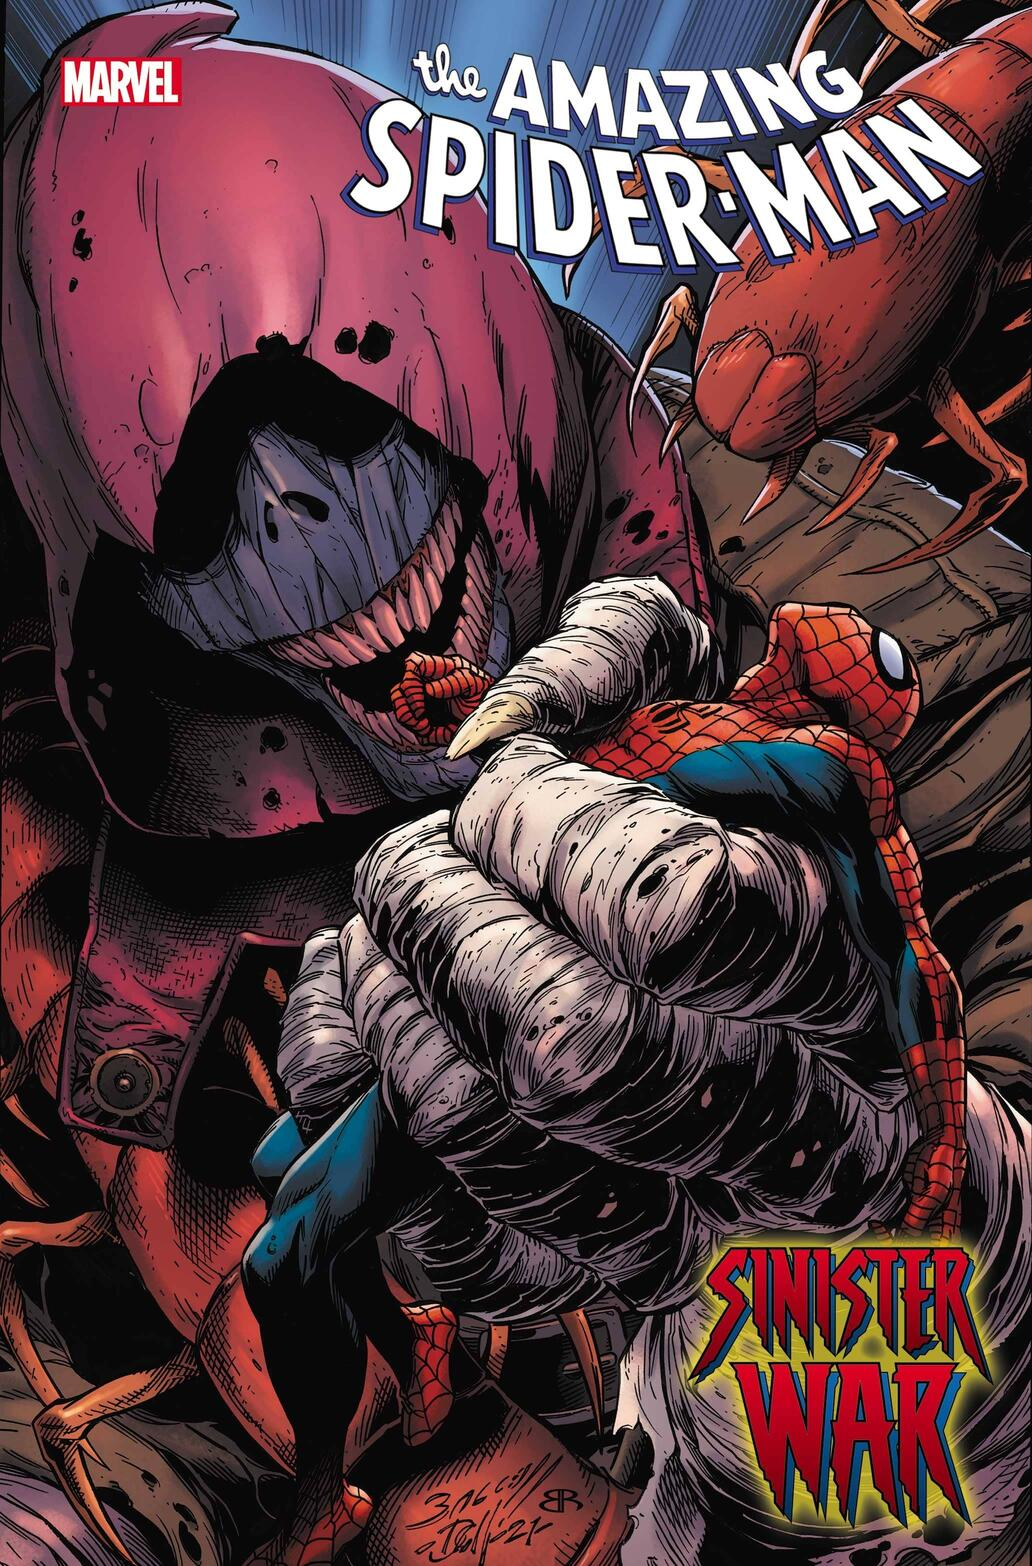 Cover to AMAZING SPIDER-MAN #71 by Mark Bagley, on sale in comic shops July 21.